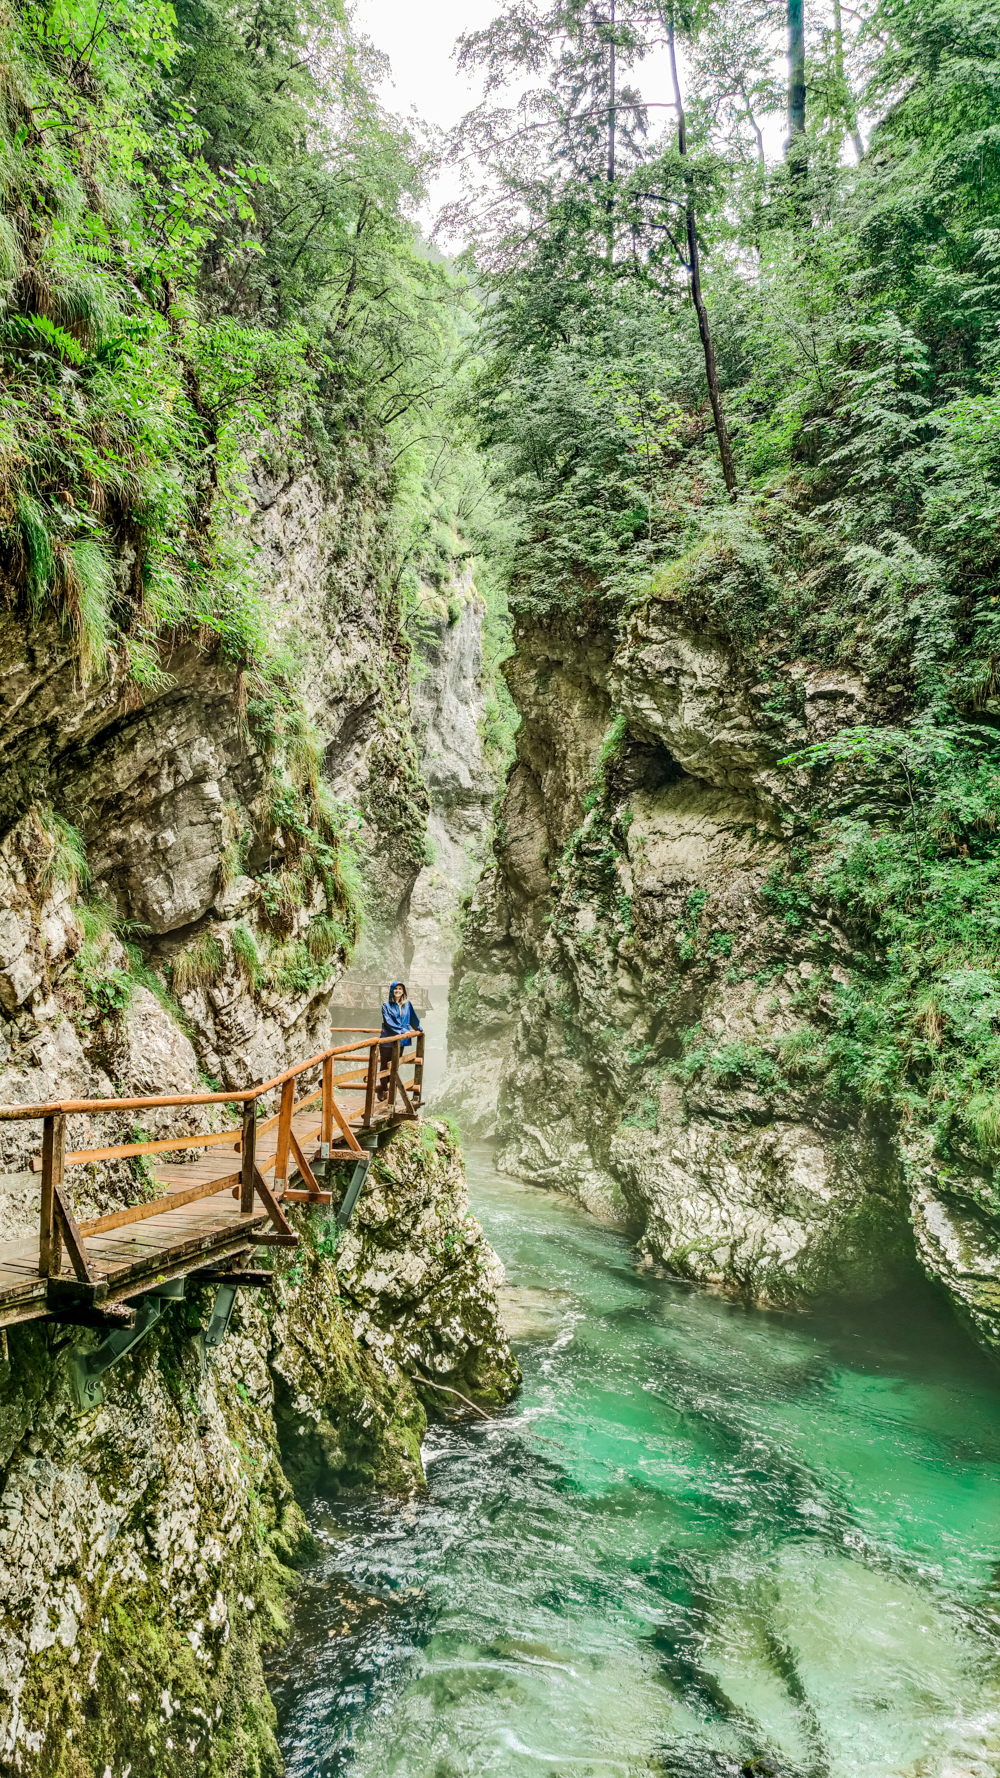 Vintgar Gorge, a must-visit natural gem next to Bled - 4-day Slovenia travel itinerary for the best outdoor adventures | Aliz's Wonderland